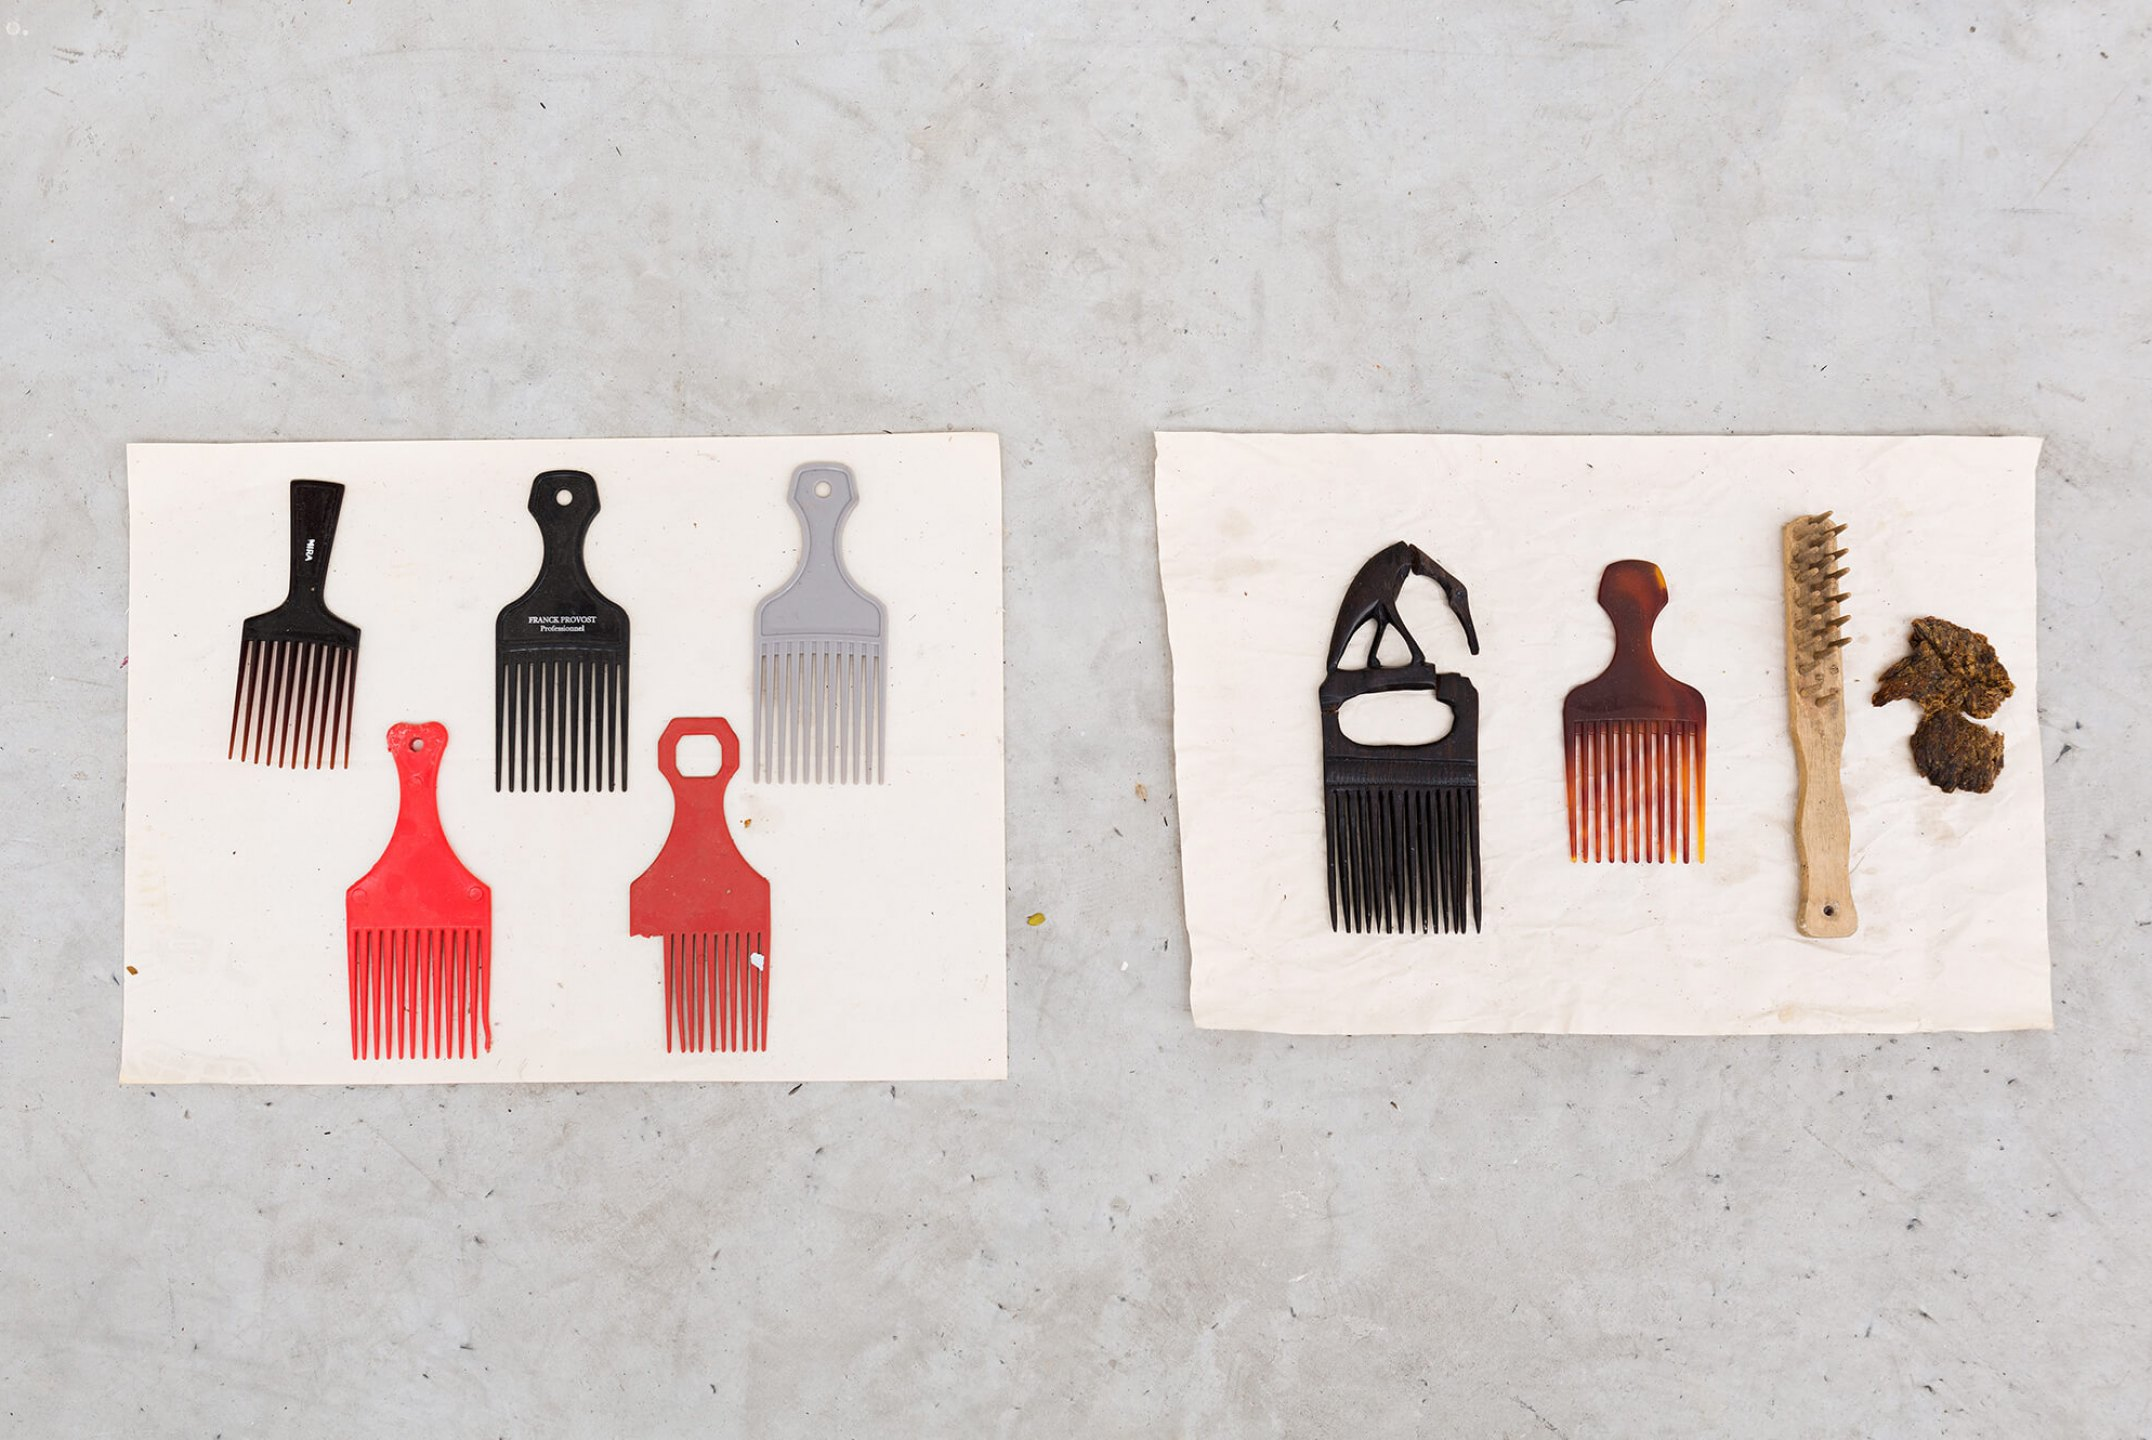 Paulo Nazareth, <em>CA - for BLACK</em>, 2014, plastic and wood combs, 36 × 96 × 4 cm - Mendes Wood DM